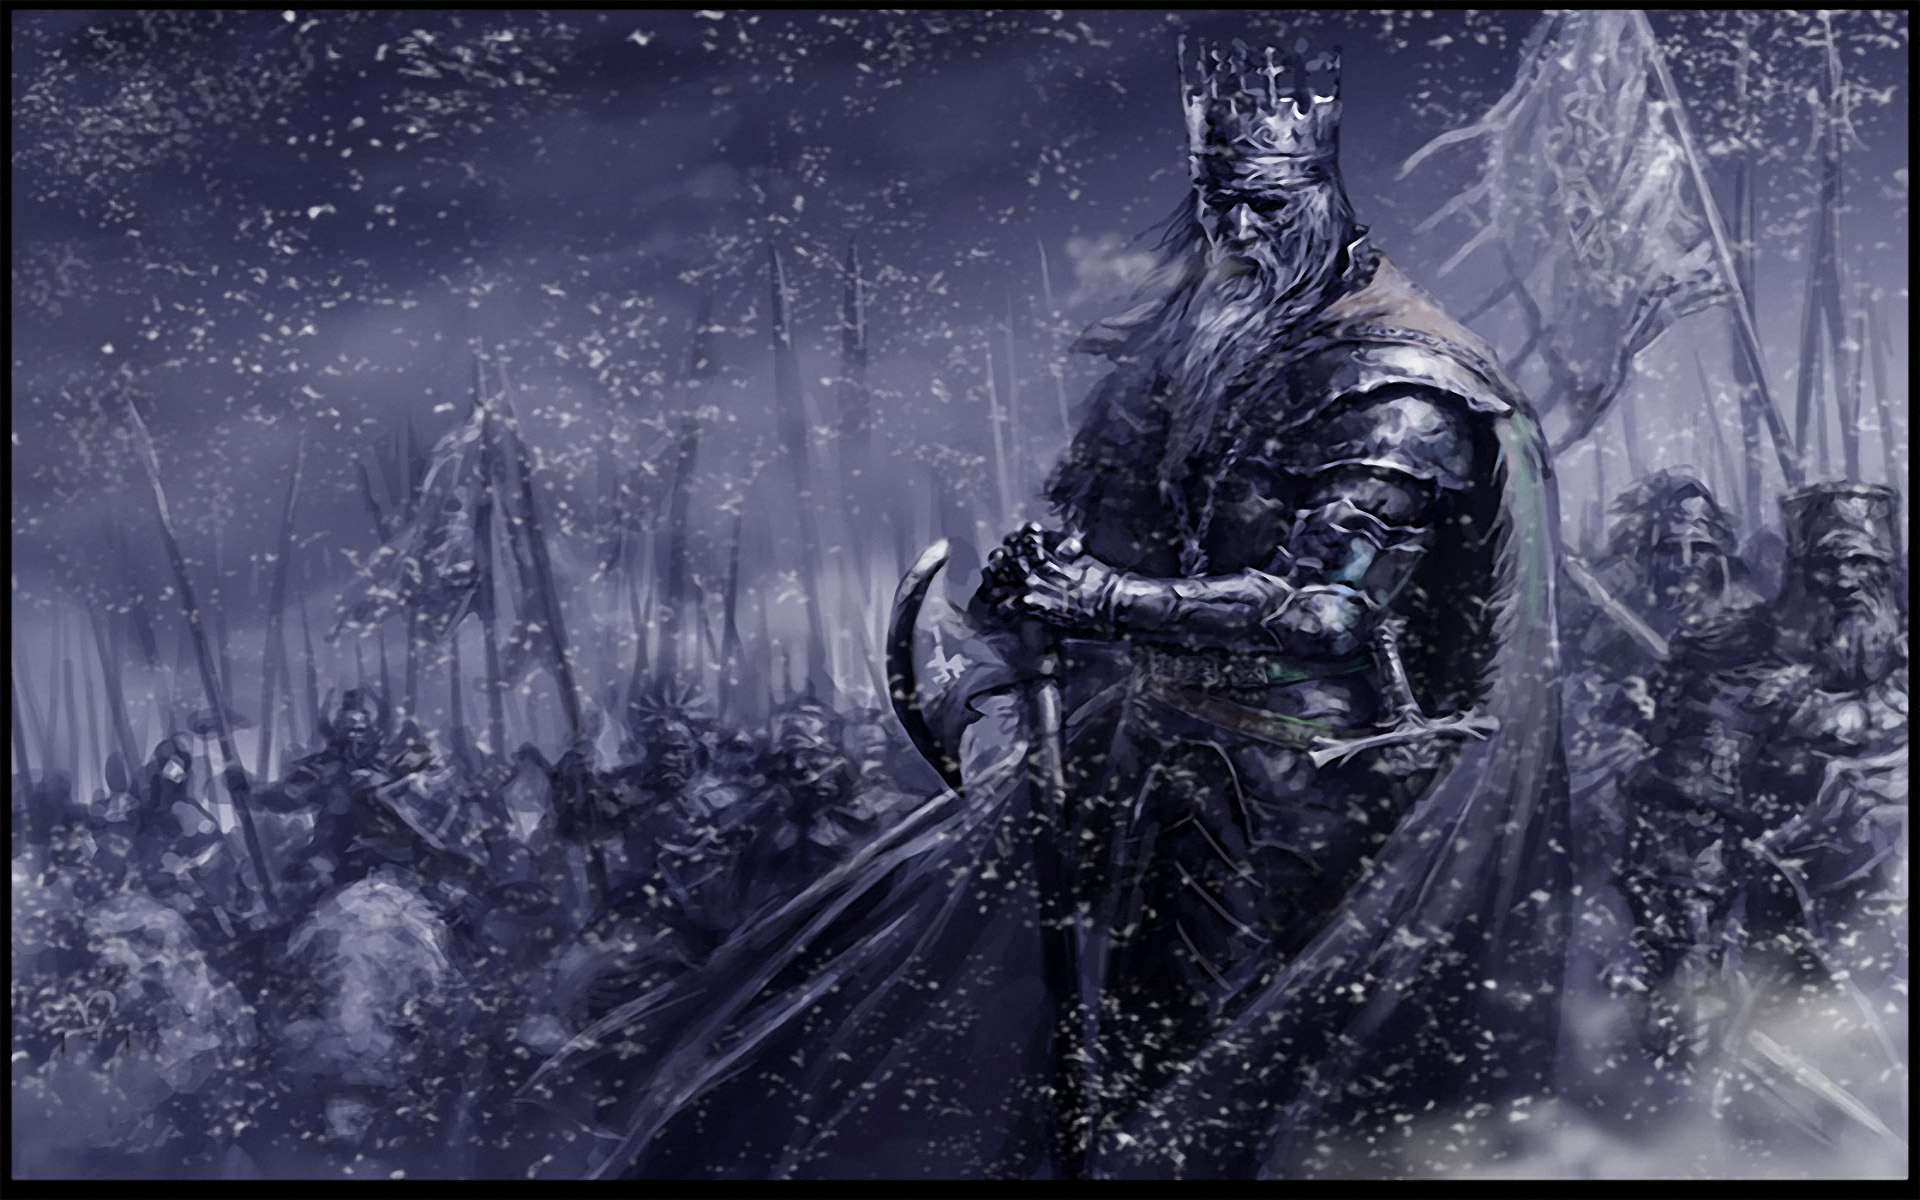 Winter king hd wallpaper background image 1920x1200 - Fantasy wallpaper pc ...